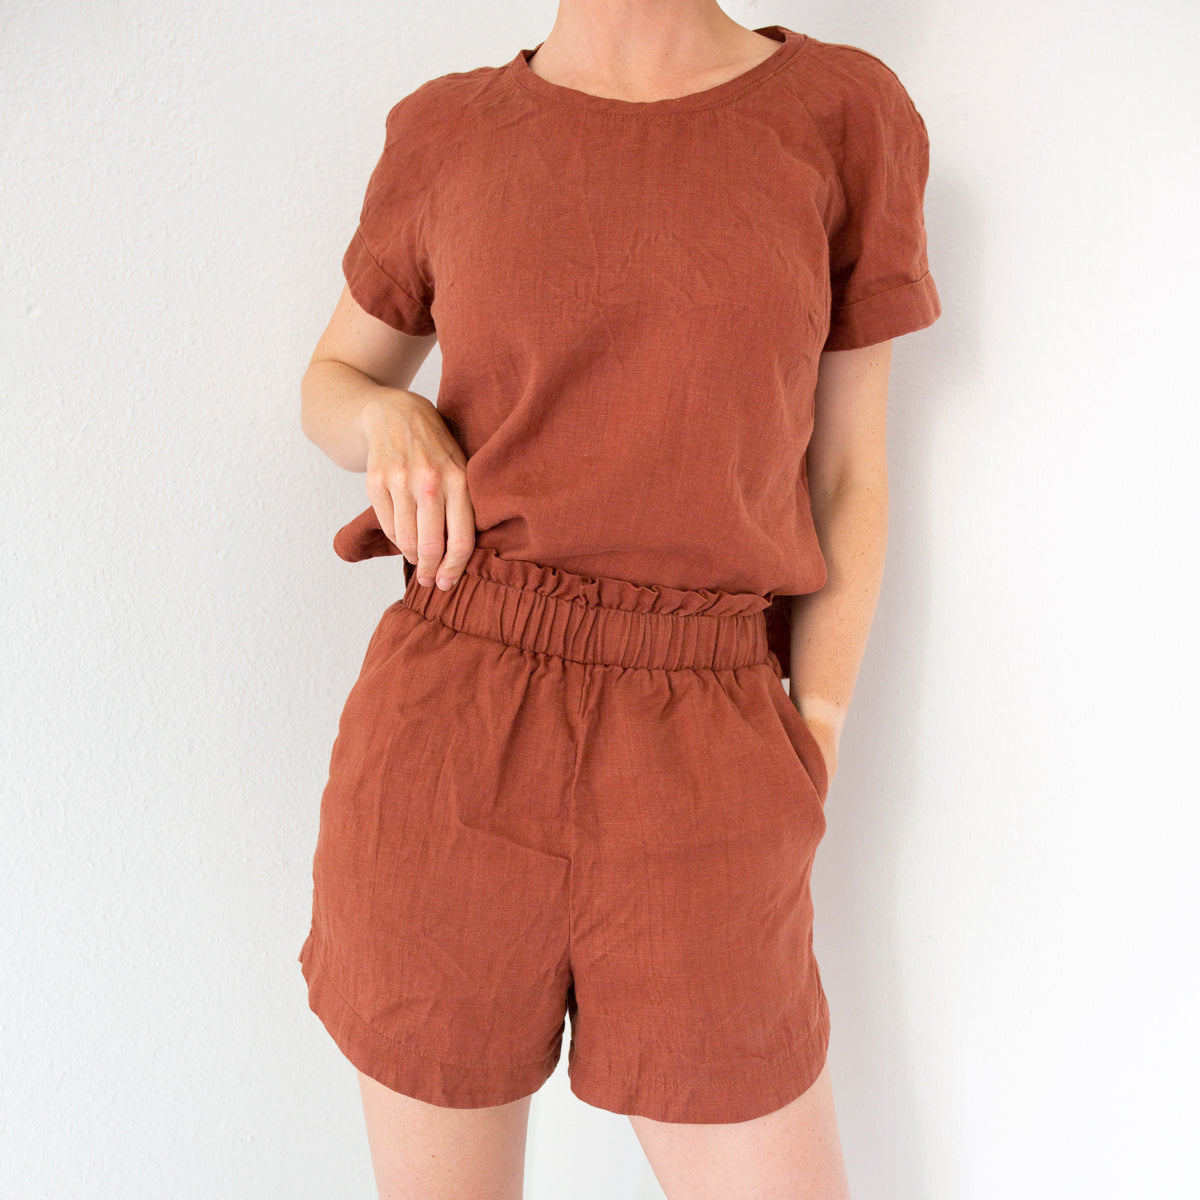 Coram Top Sewing Pattern by Allie Olson